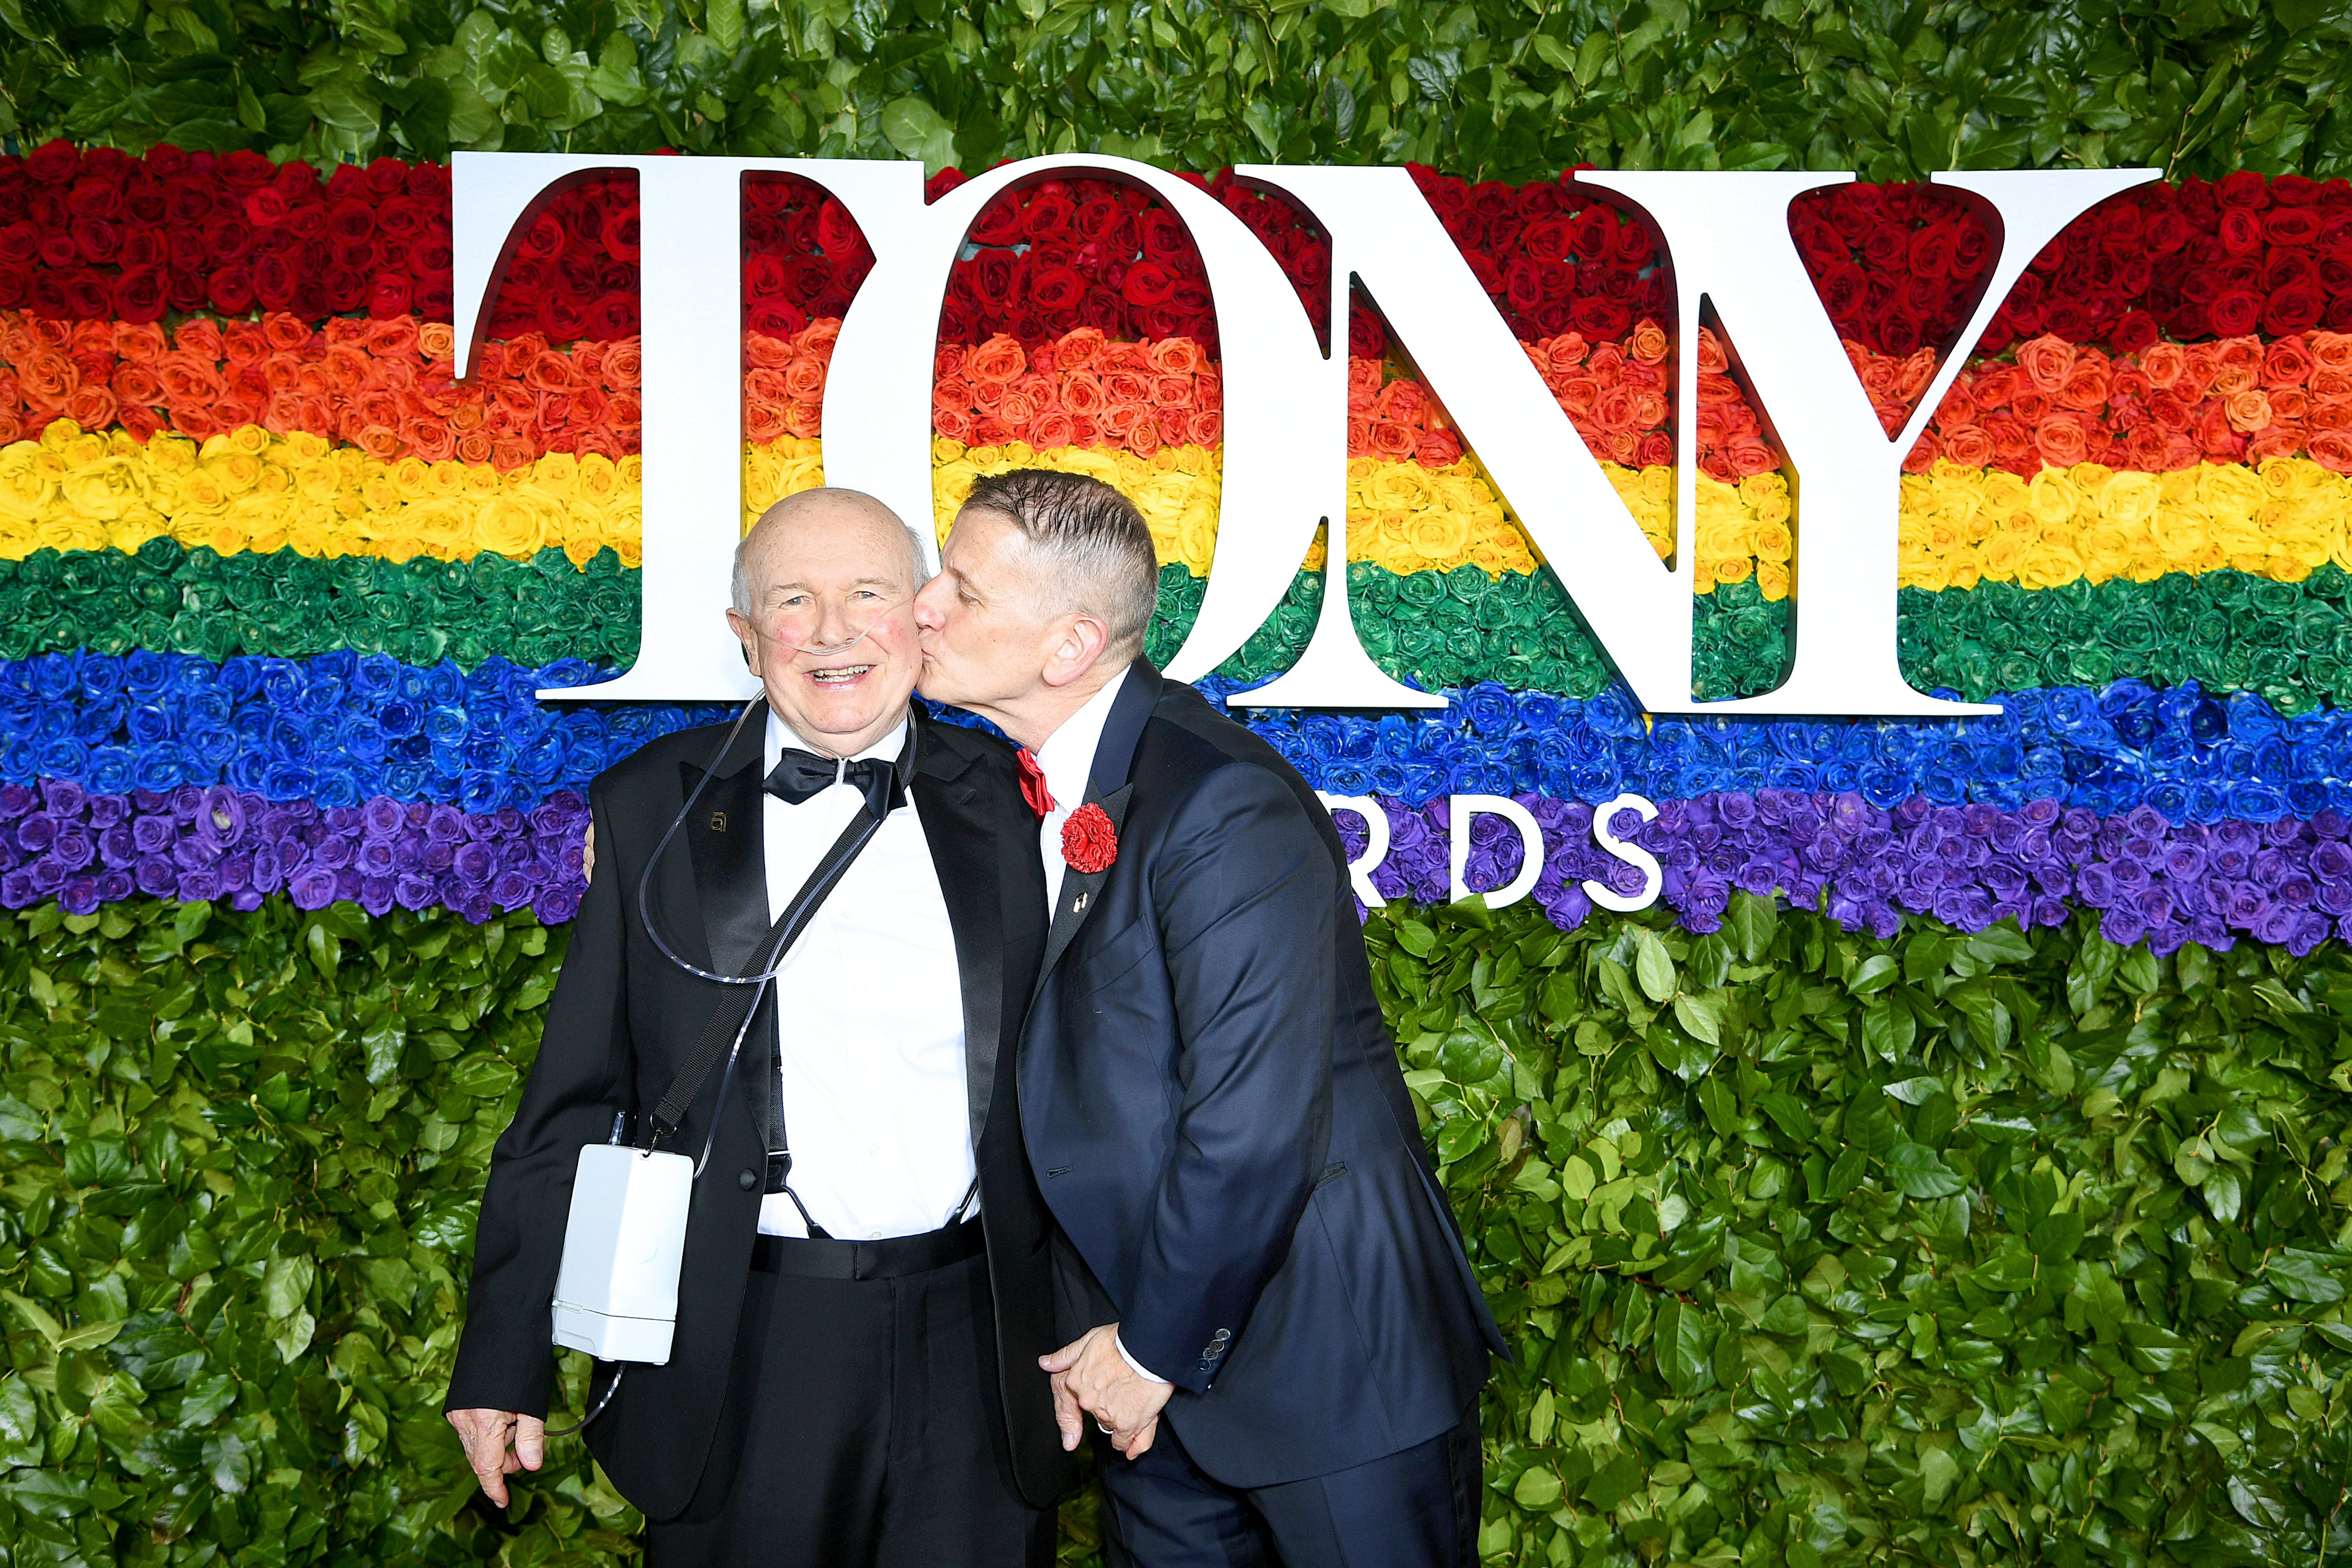 Terrence McNally and Tom Kirdahy attend the 73rd annual Tony Awards at Radio City Music Hall in New York City.